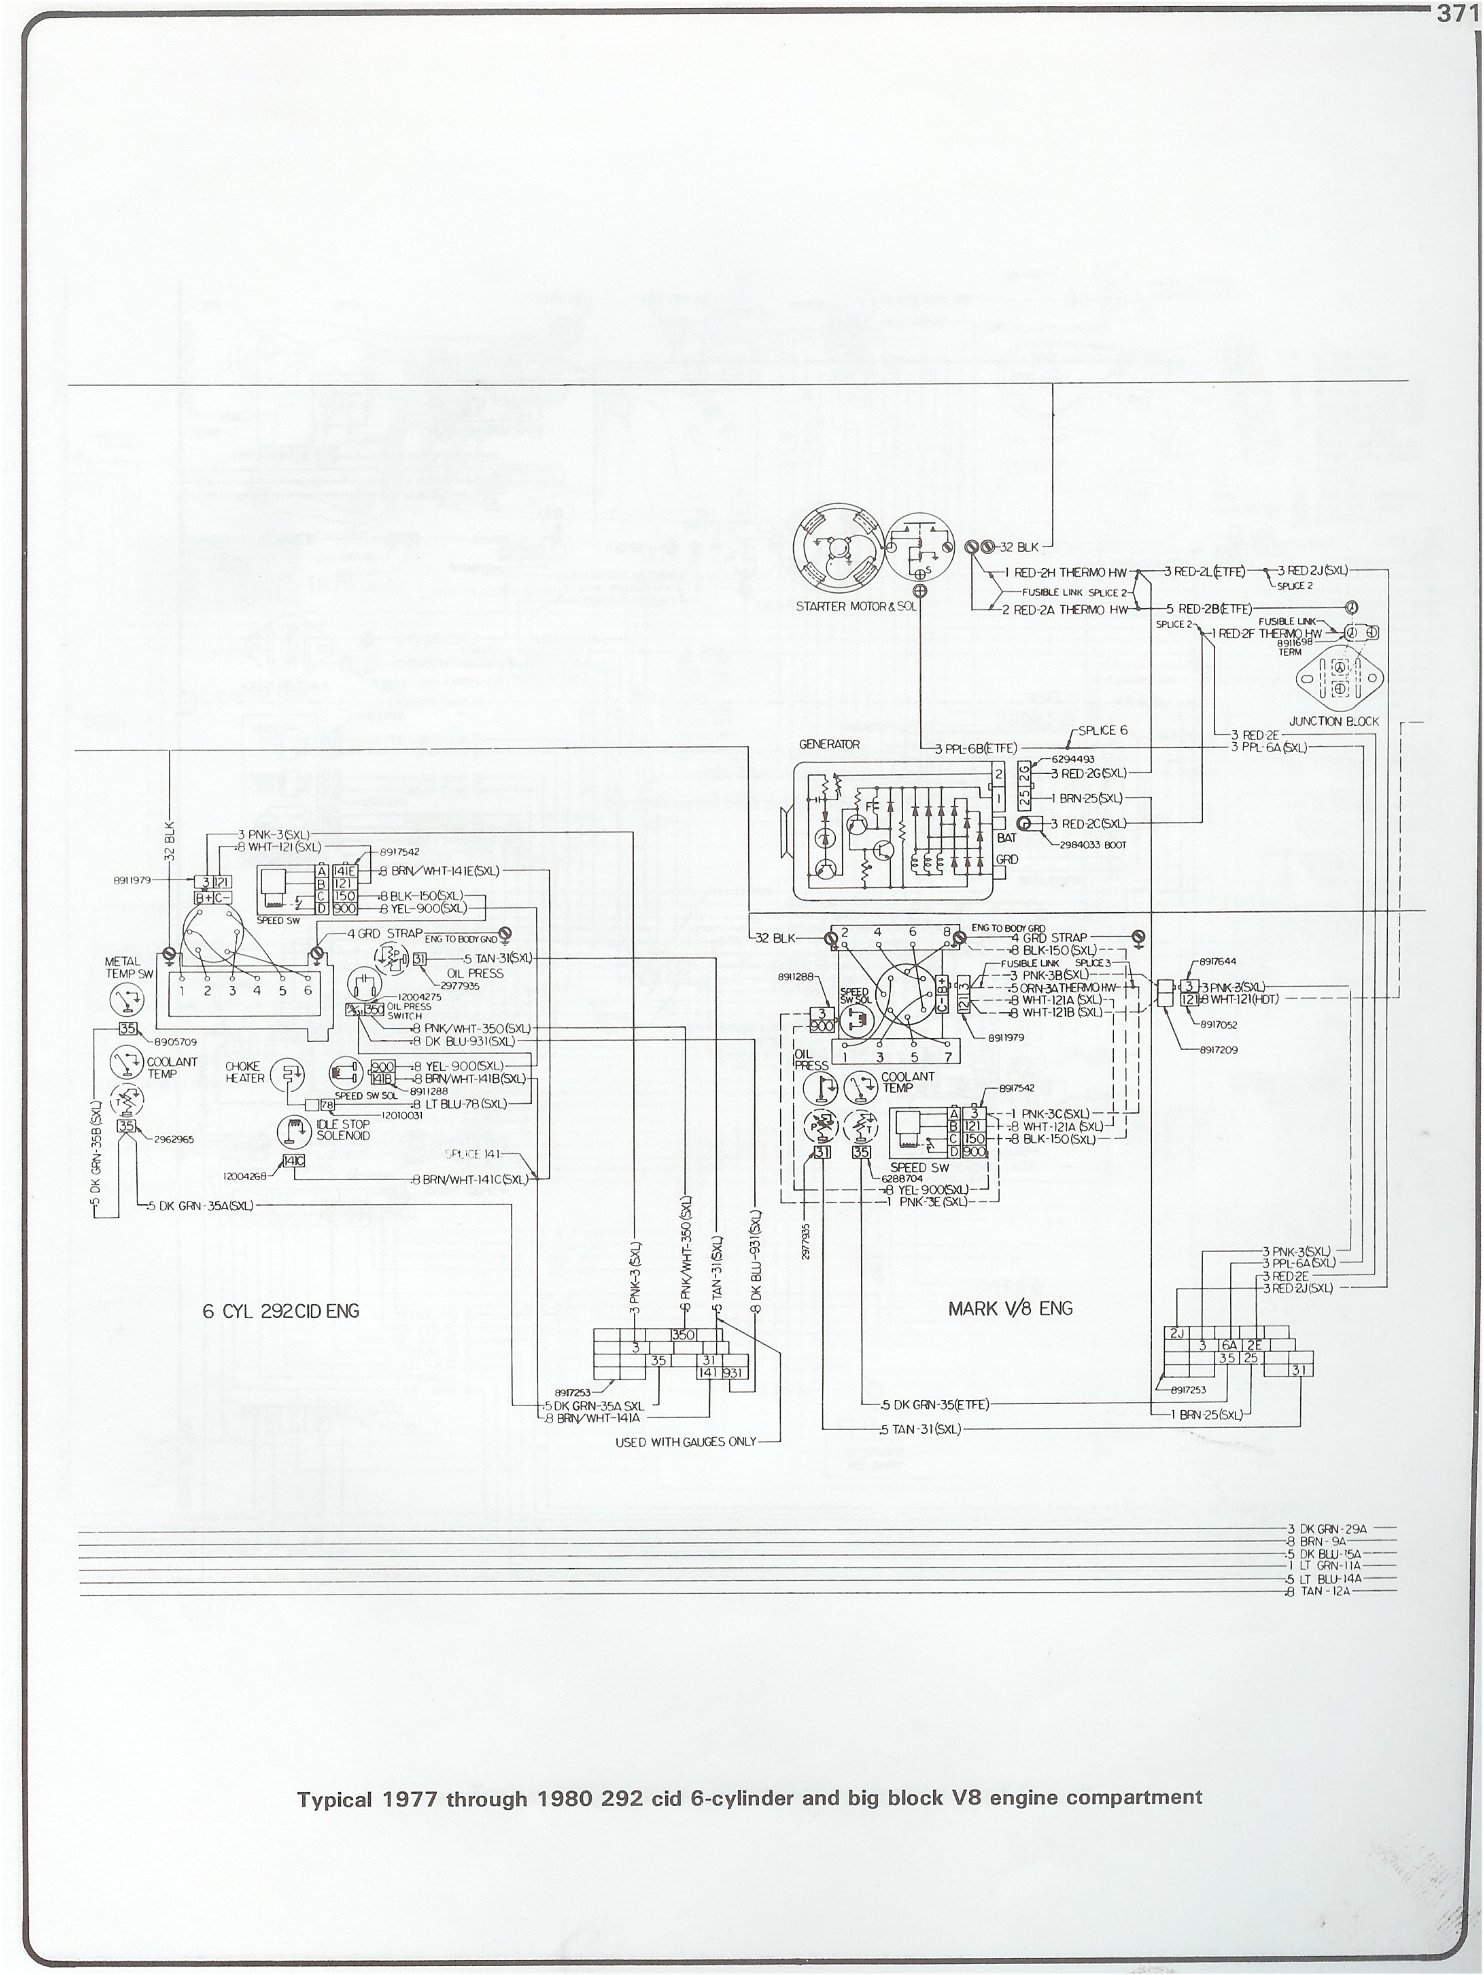 Complete 73 87 Wiring Diagrams 80 Gm Alternator Diagram 77 292 I6 And Bbc Engine